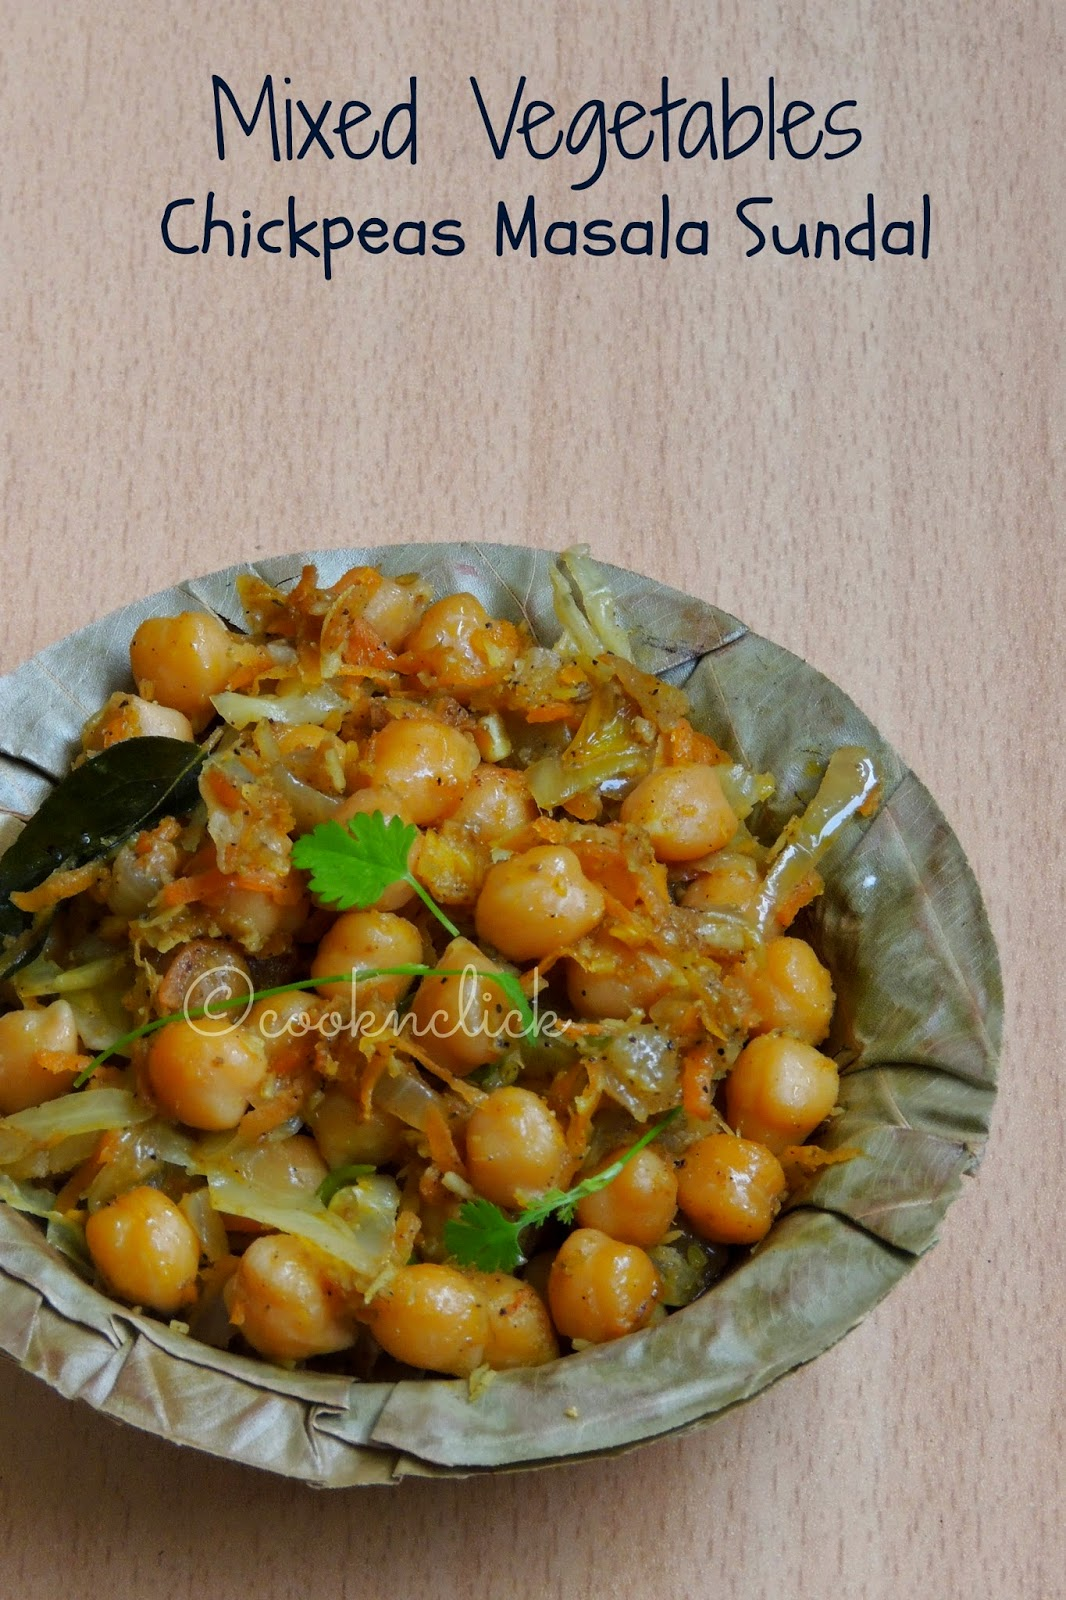 Mixed Vegetable Channa sundal, Chickpeas mixed vegetable sundal, Chickpeas masala sundal